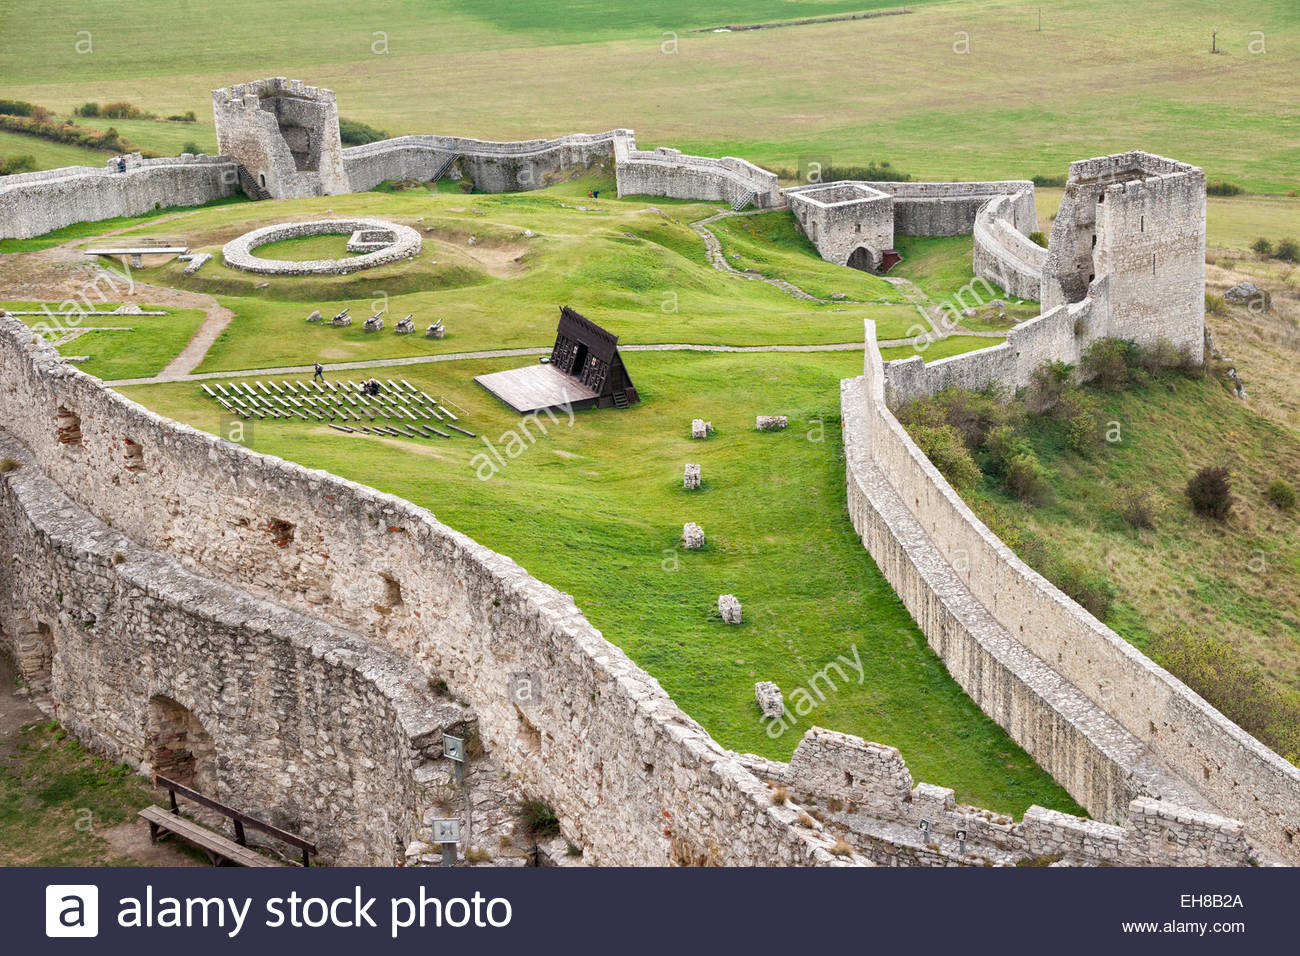 Lower courtyard with fortified wall below Spis Castle, UNESCO World Heritage Site, Levoca, Slovakia, Europe - Stock Image